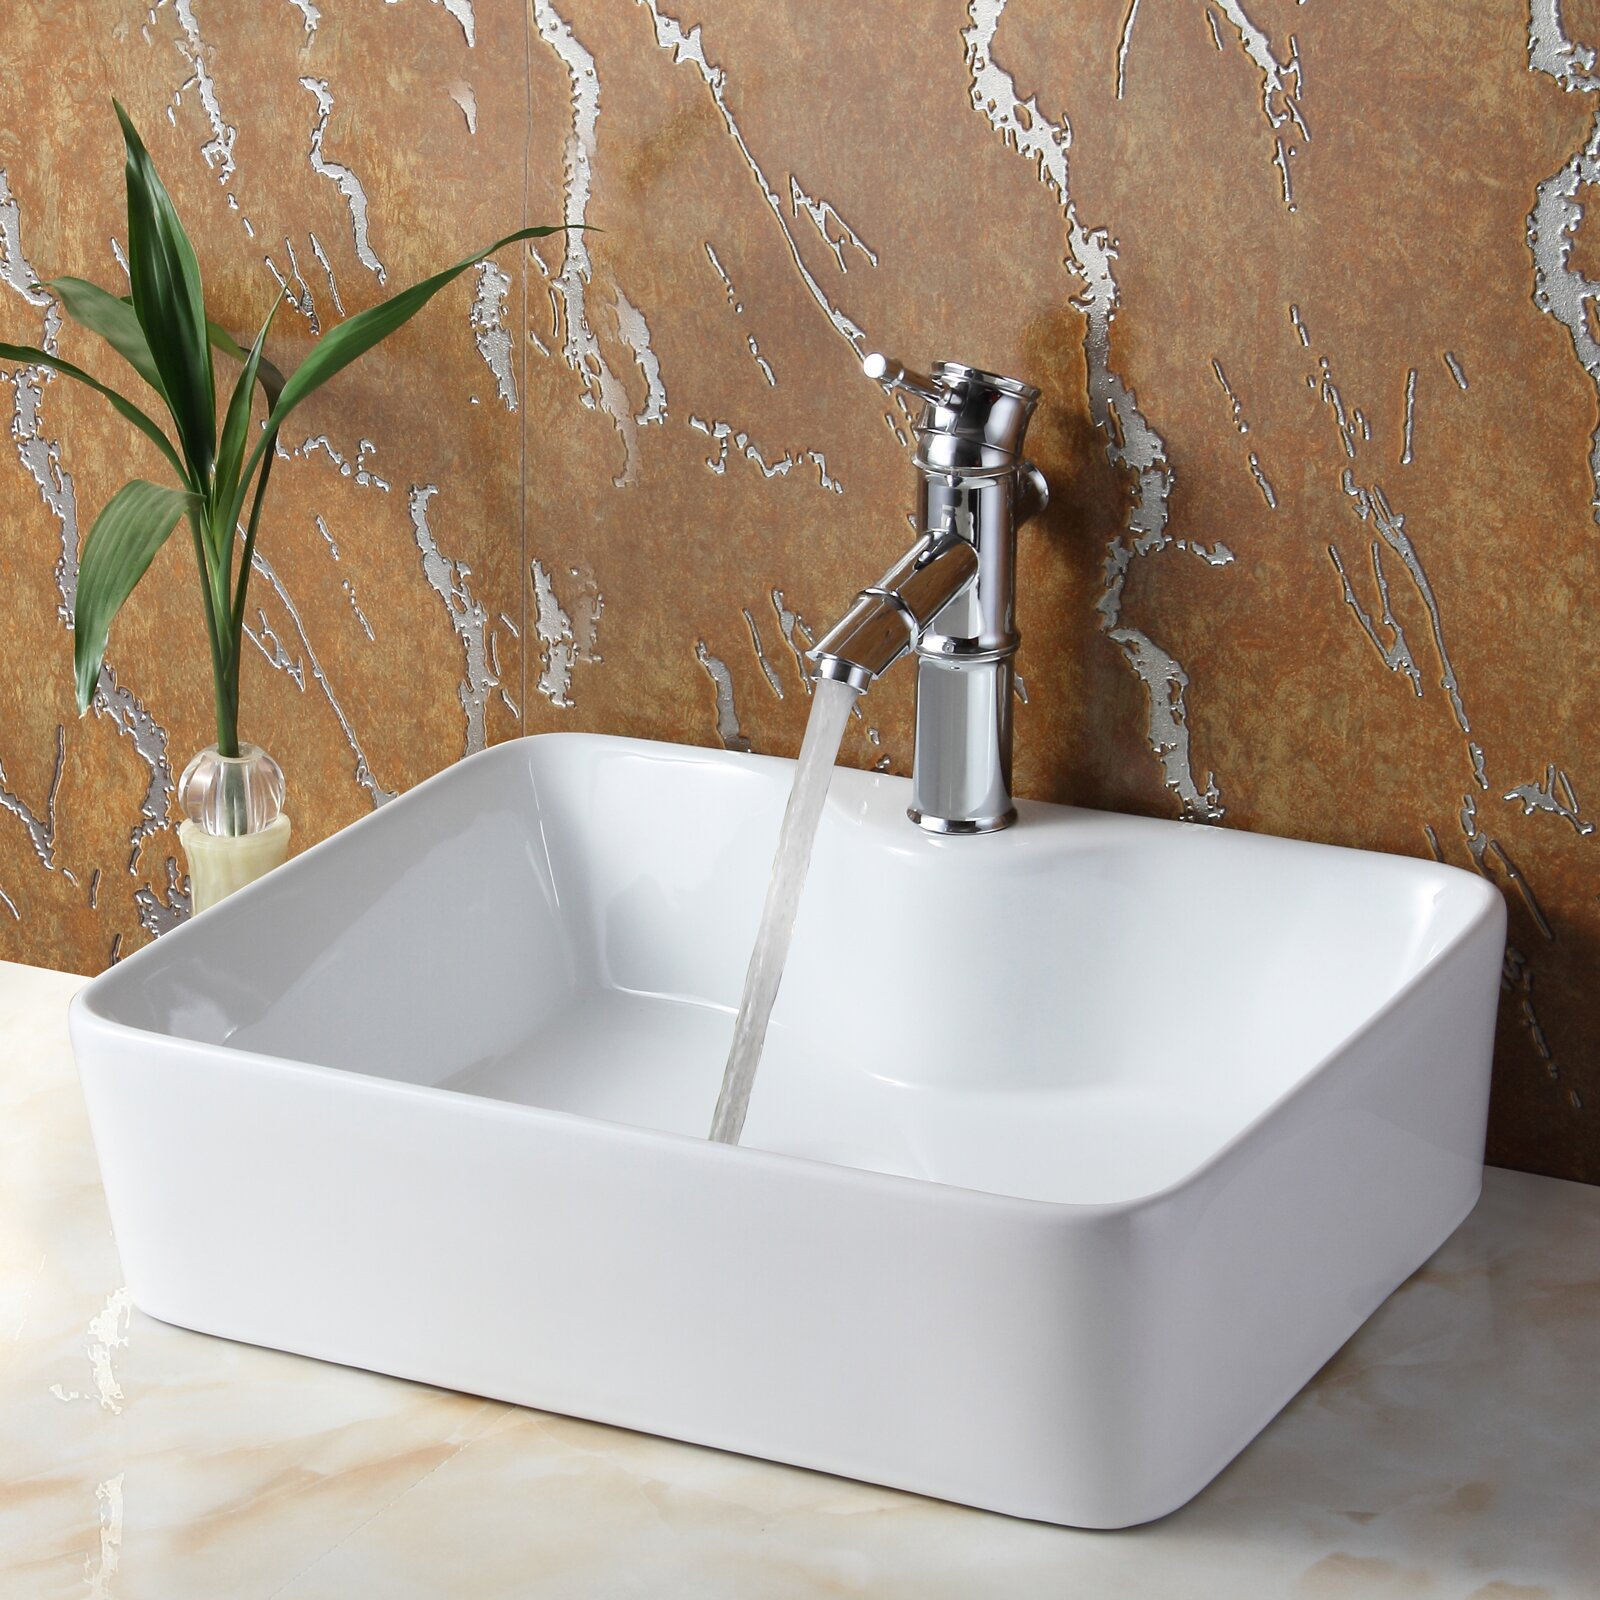 Modern Bathroom Sinks AllModern